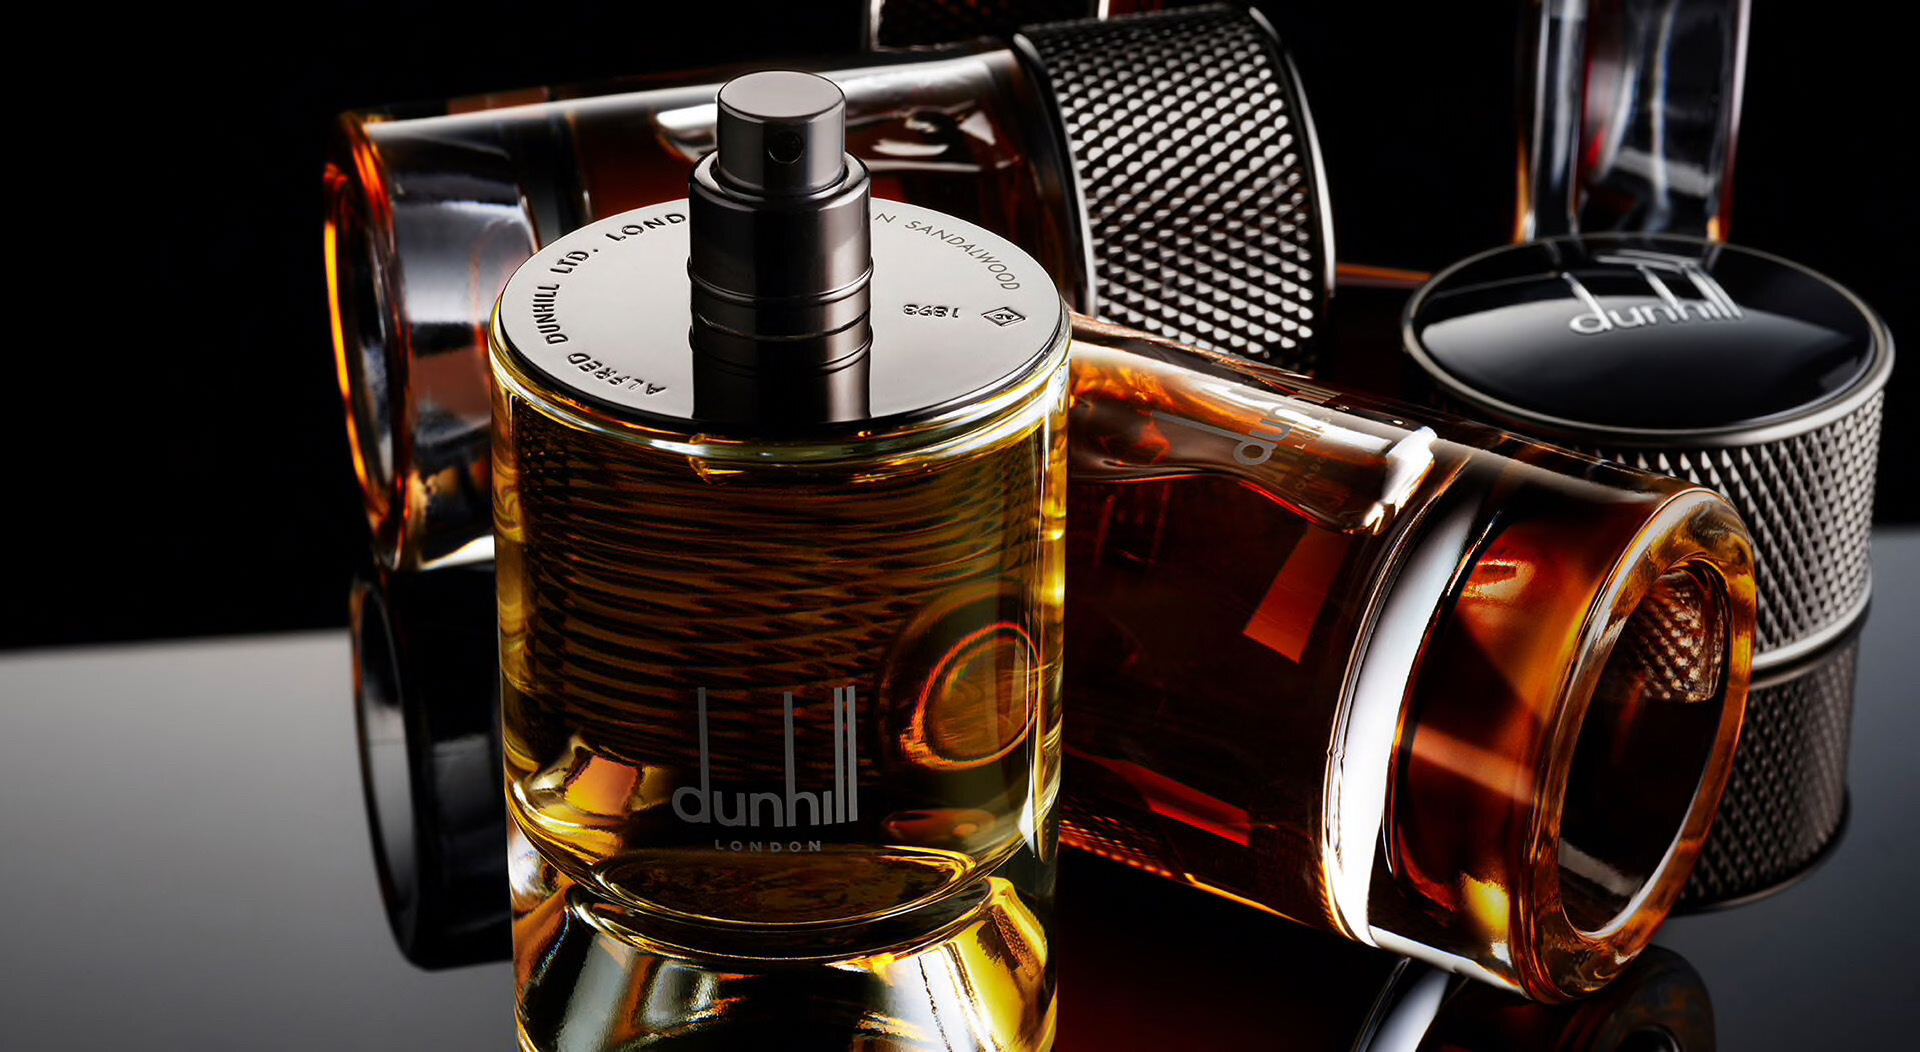 dunhill_signature_group_02.jpg